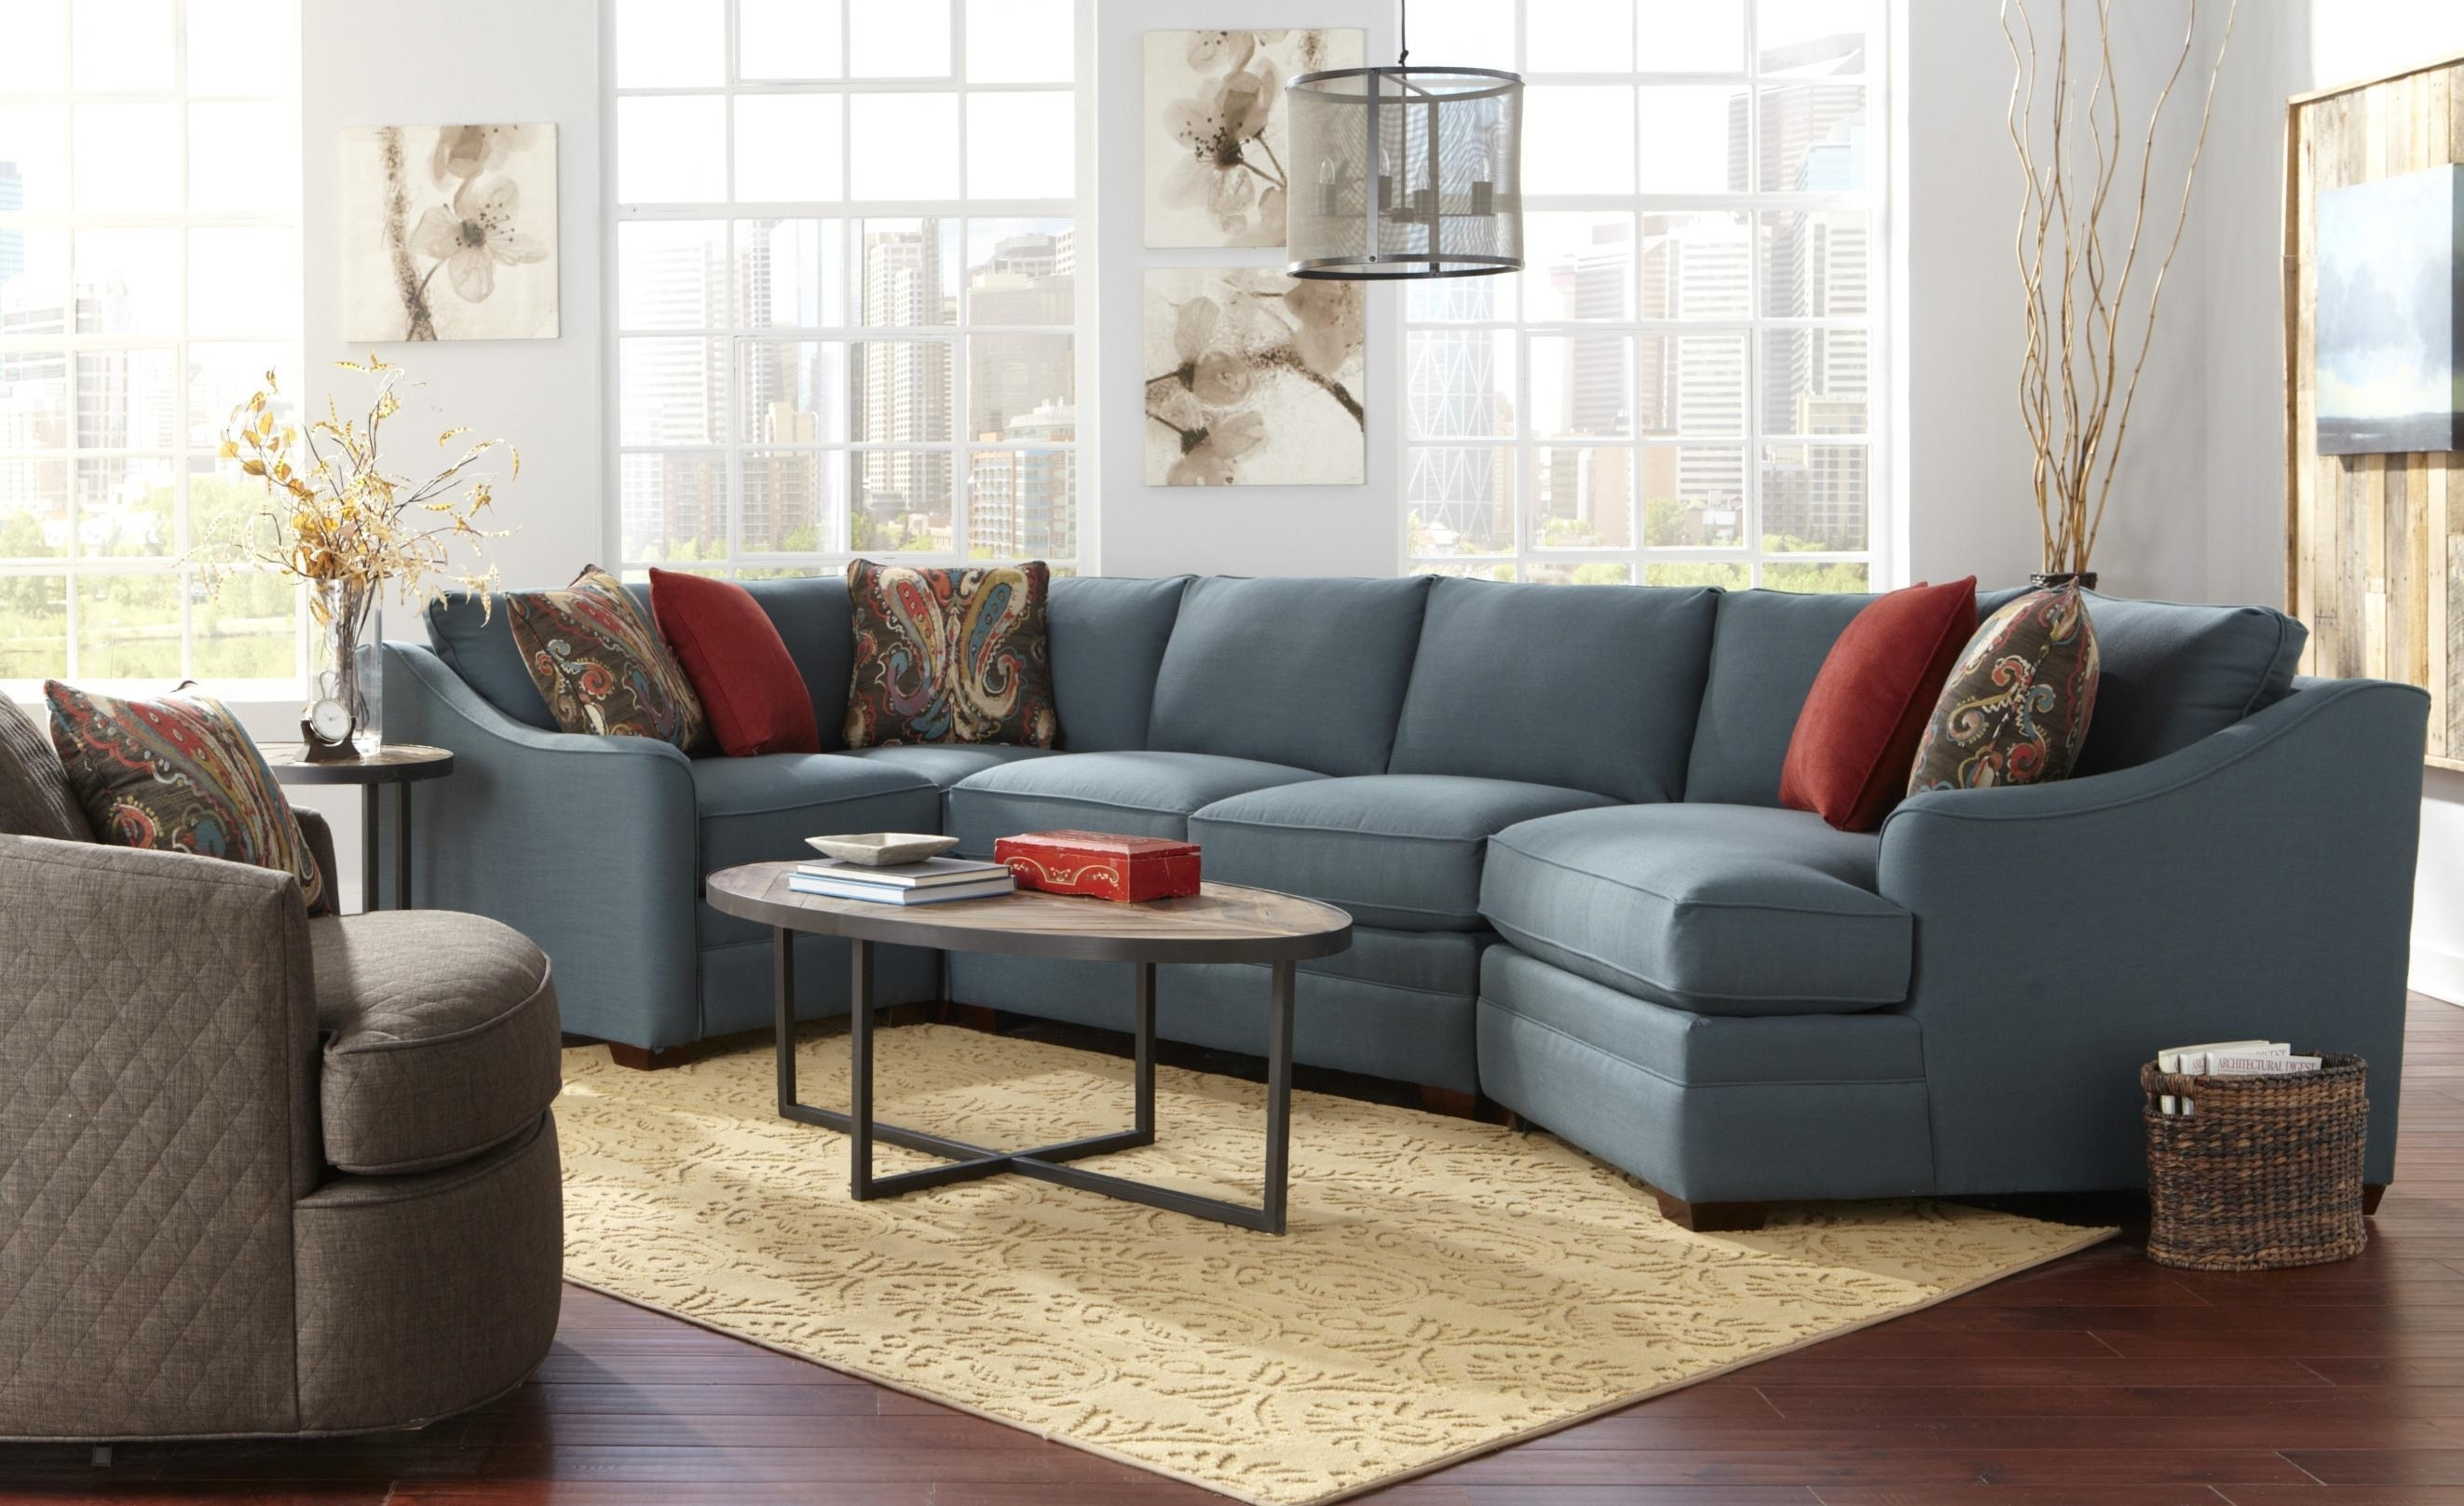 Sofa Ideas: Craftsman Sectional Sofa (Explore #2 Of 15 Photos) with regard to Craftsman Sectional Sofas (Image 9 of 10)